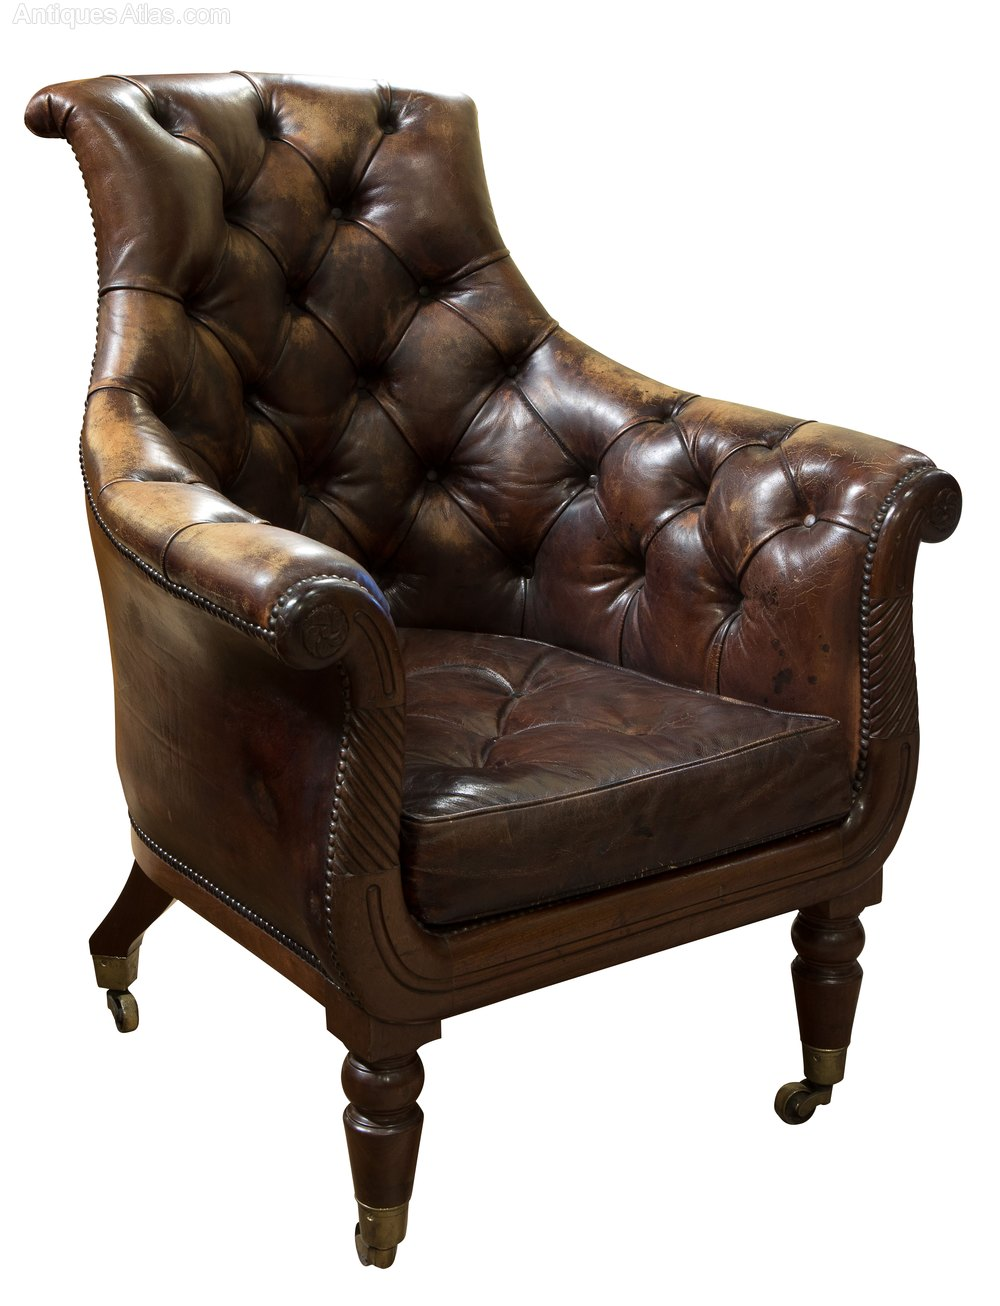 Regency Mahogany Distressed Leather Armchair C1820 ...